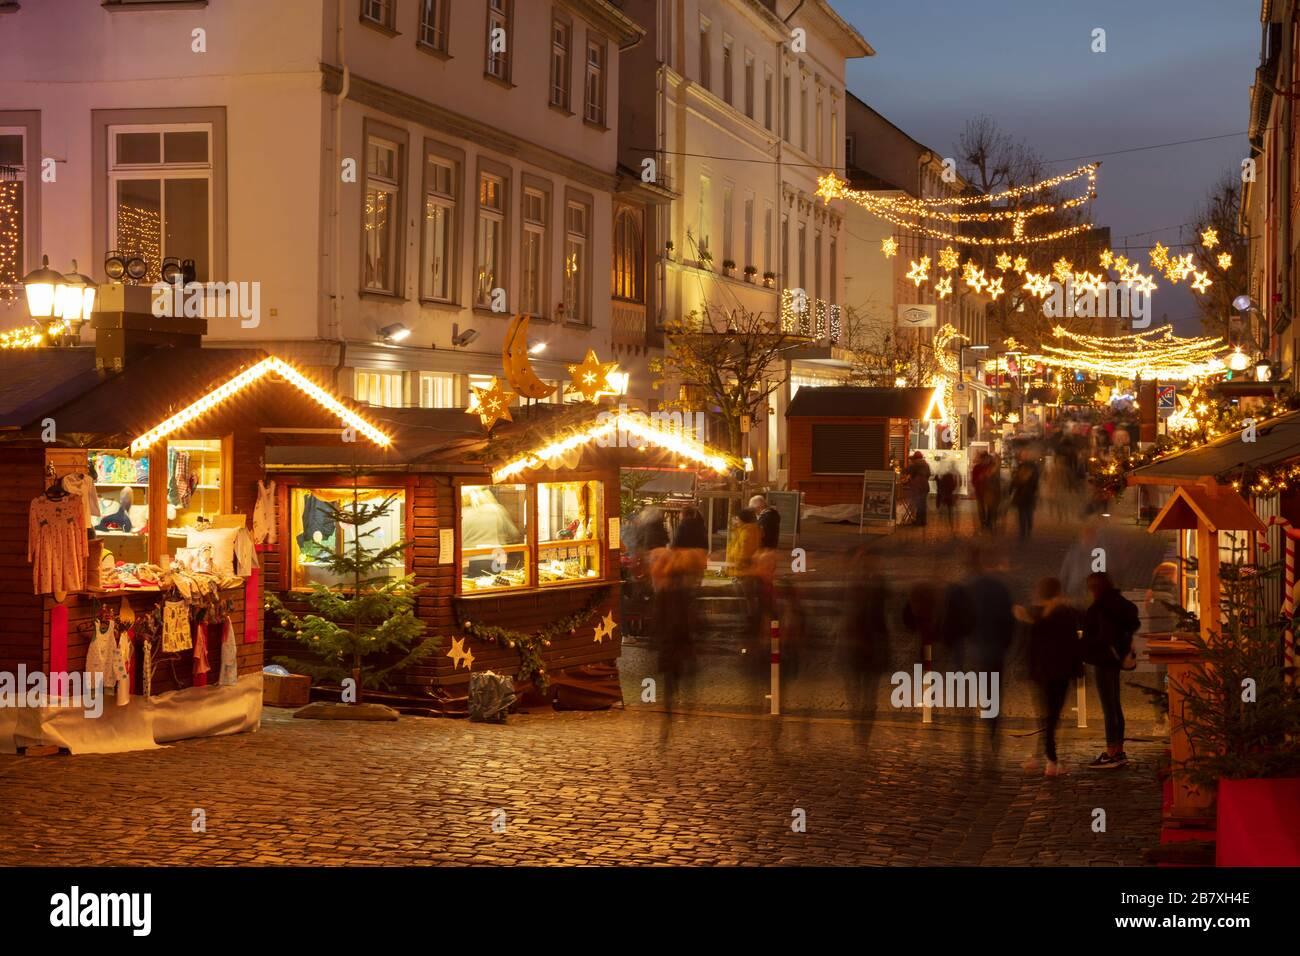 Limburg An Der Lahn Christmas Market 2020 Limburg A D Lahn High Resolution Stock Photography and Images   Alamy